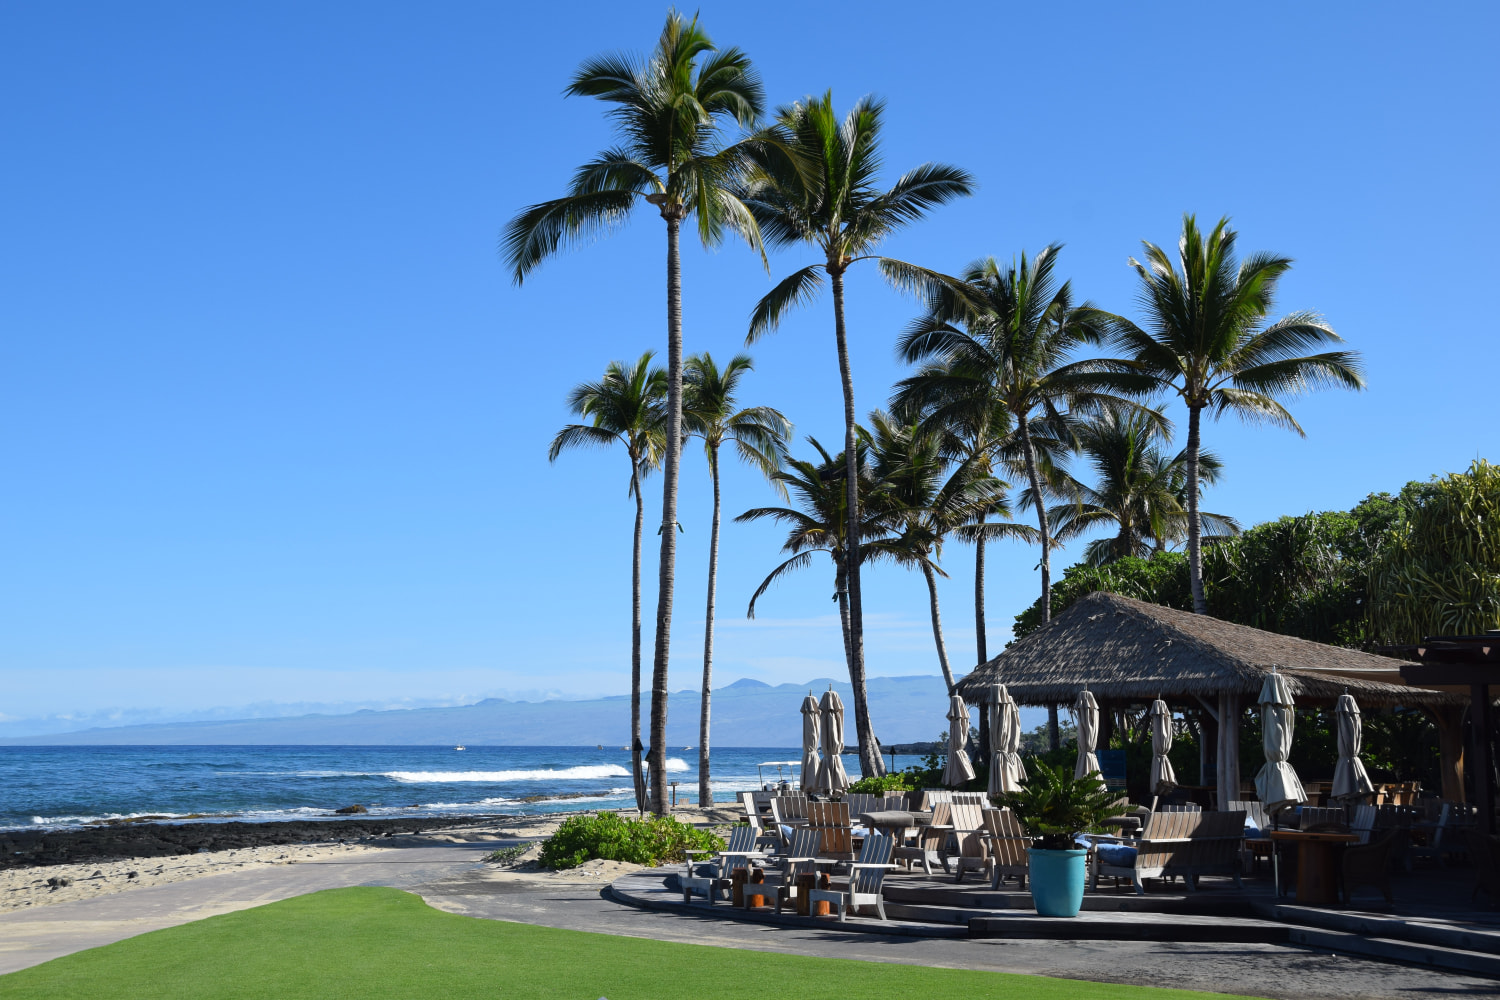 The Beach House restaurant at the Four Seasons Resort Hualalai